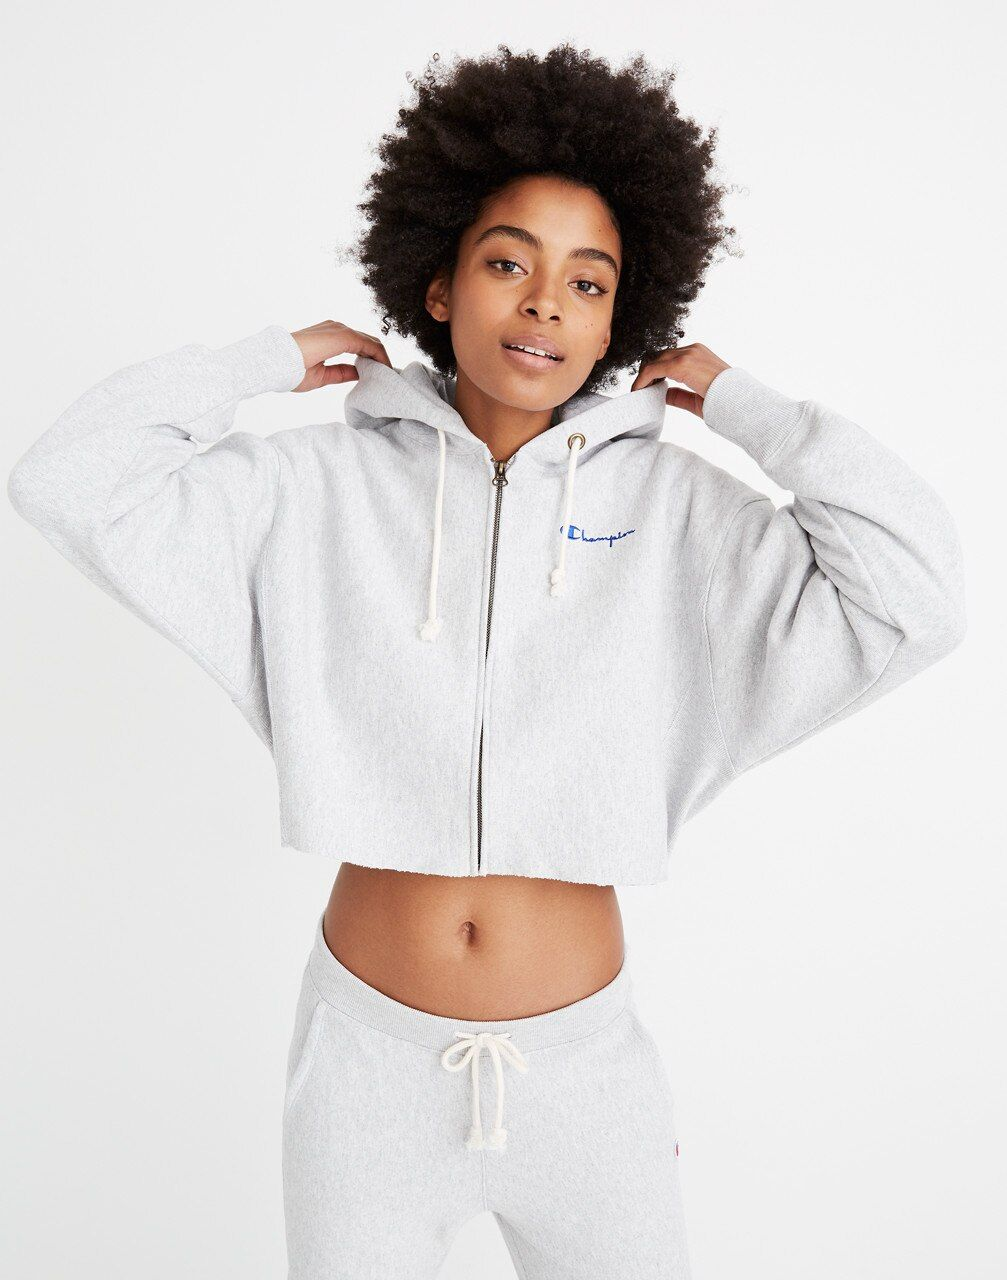 Pin By Lauren Mcdougal On Style Inspo Champion Clothing Cropped Hoodie Outfit Sporty Outfits [ 1286 x 1000 Pixel ]